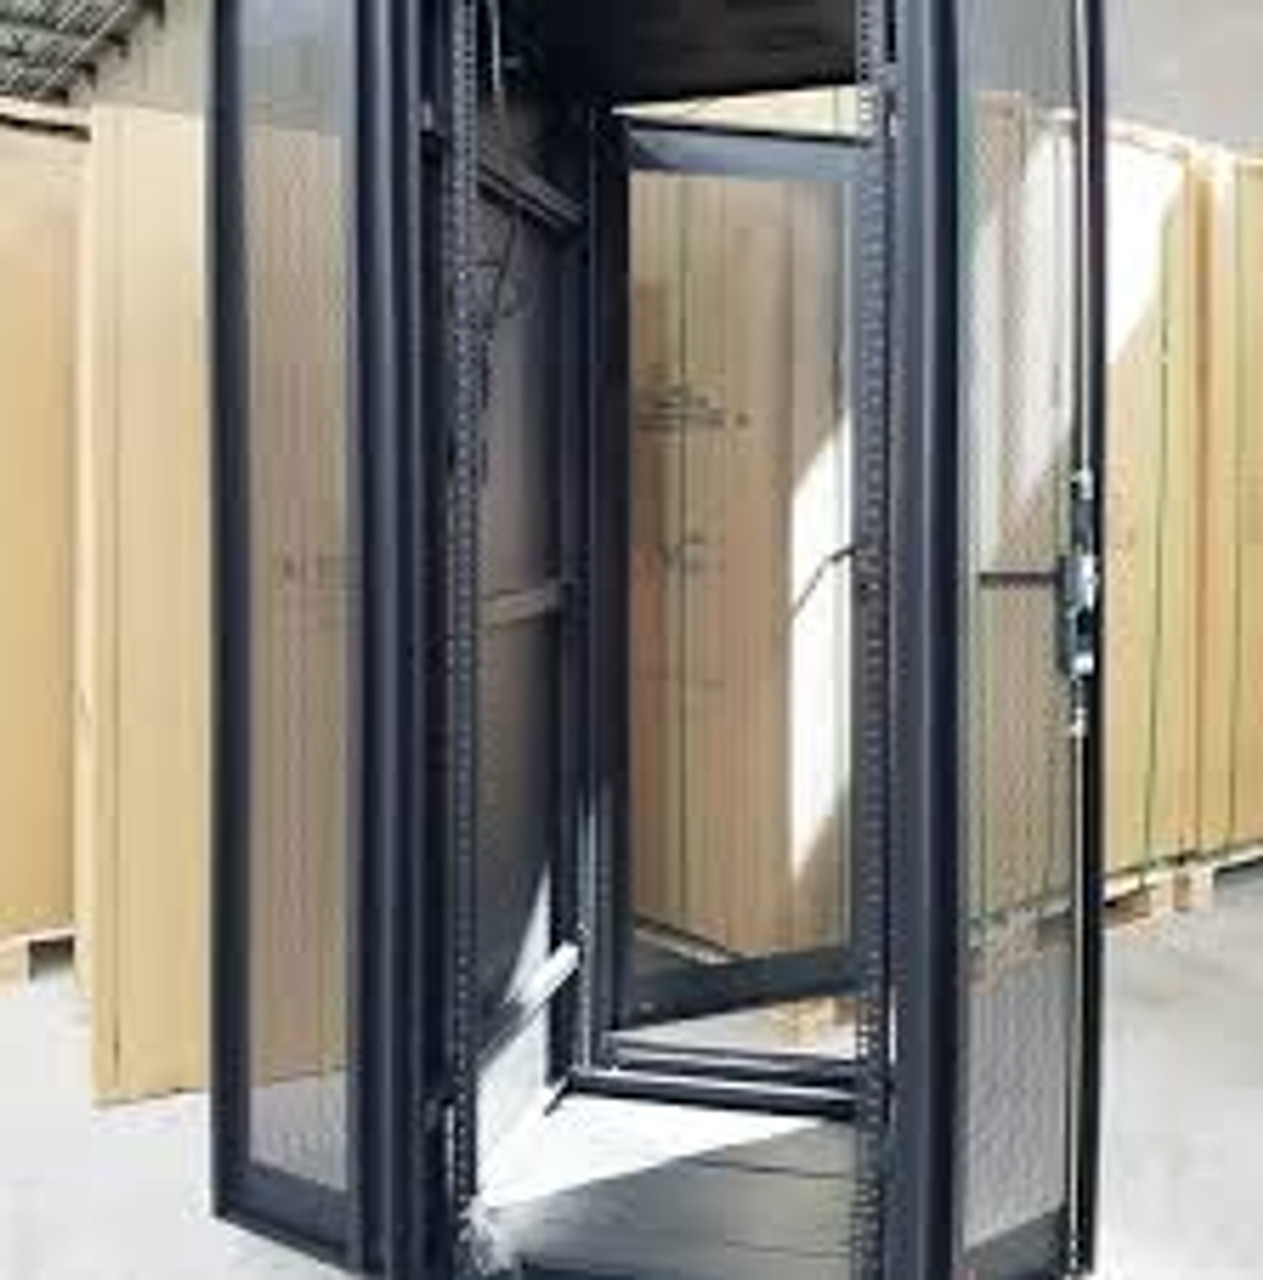 server cabinet 42u rack space with top fan tray dimensions height 82 x width 24 x depth 31 5 19 standard rack ships in a wood crate